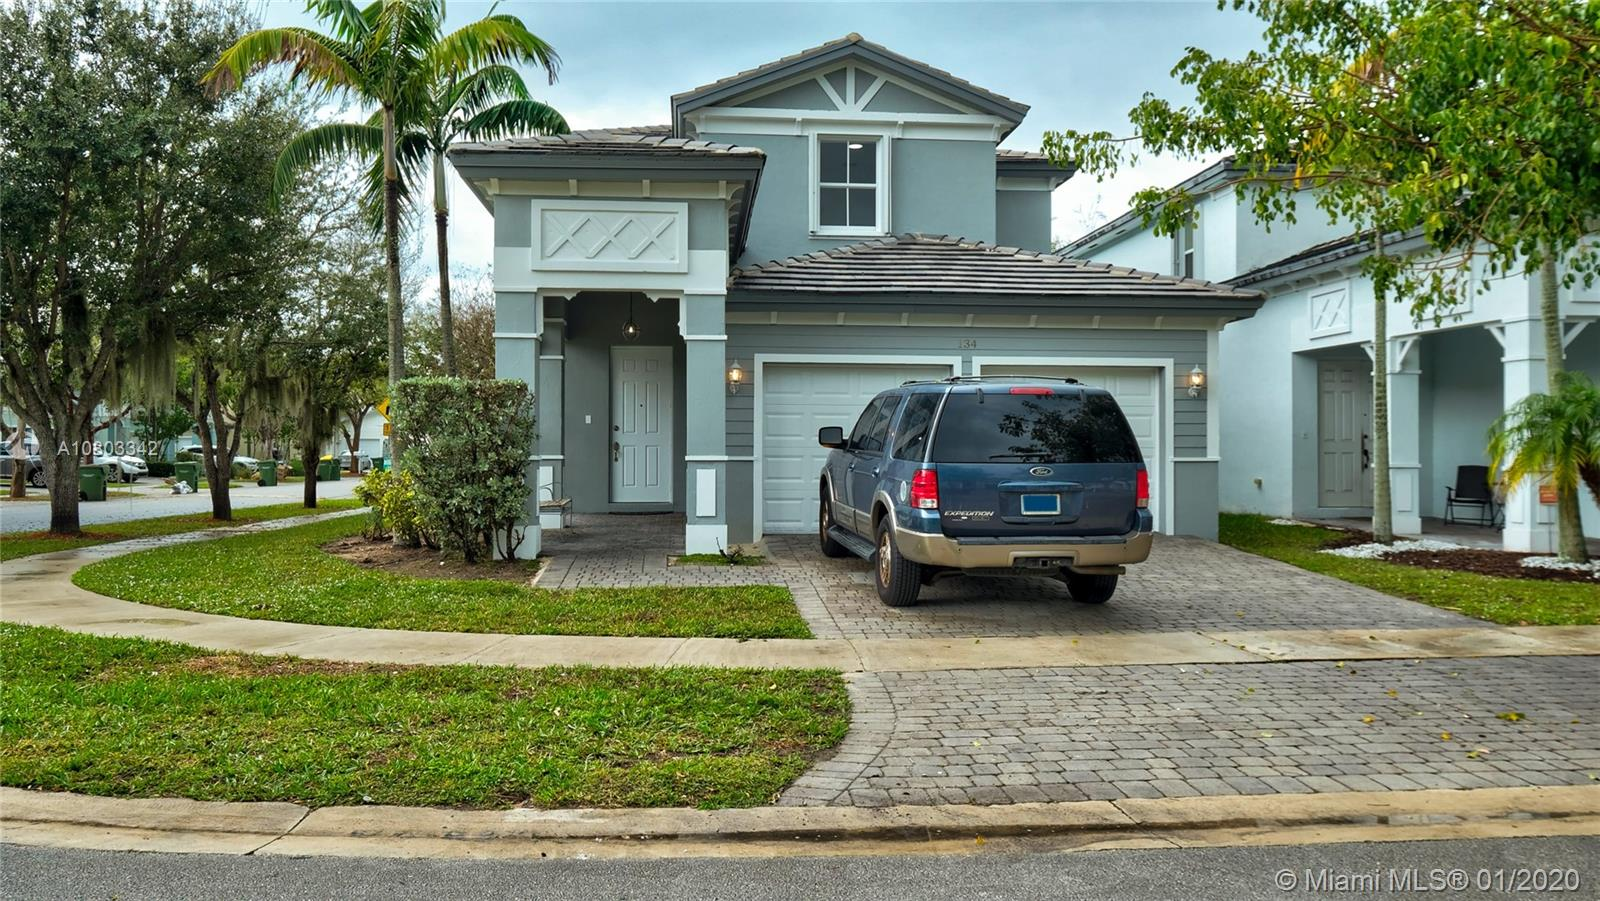 134 NE 36th Ter, Homestead, FL 33033 - Homestead, FL real estate listing